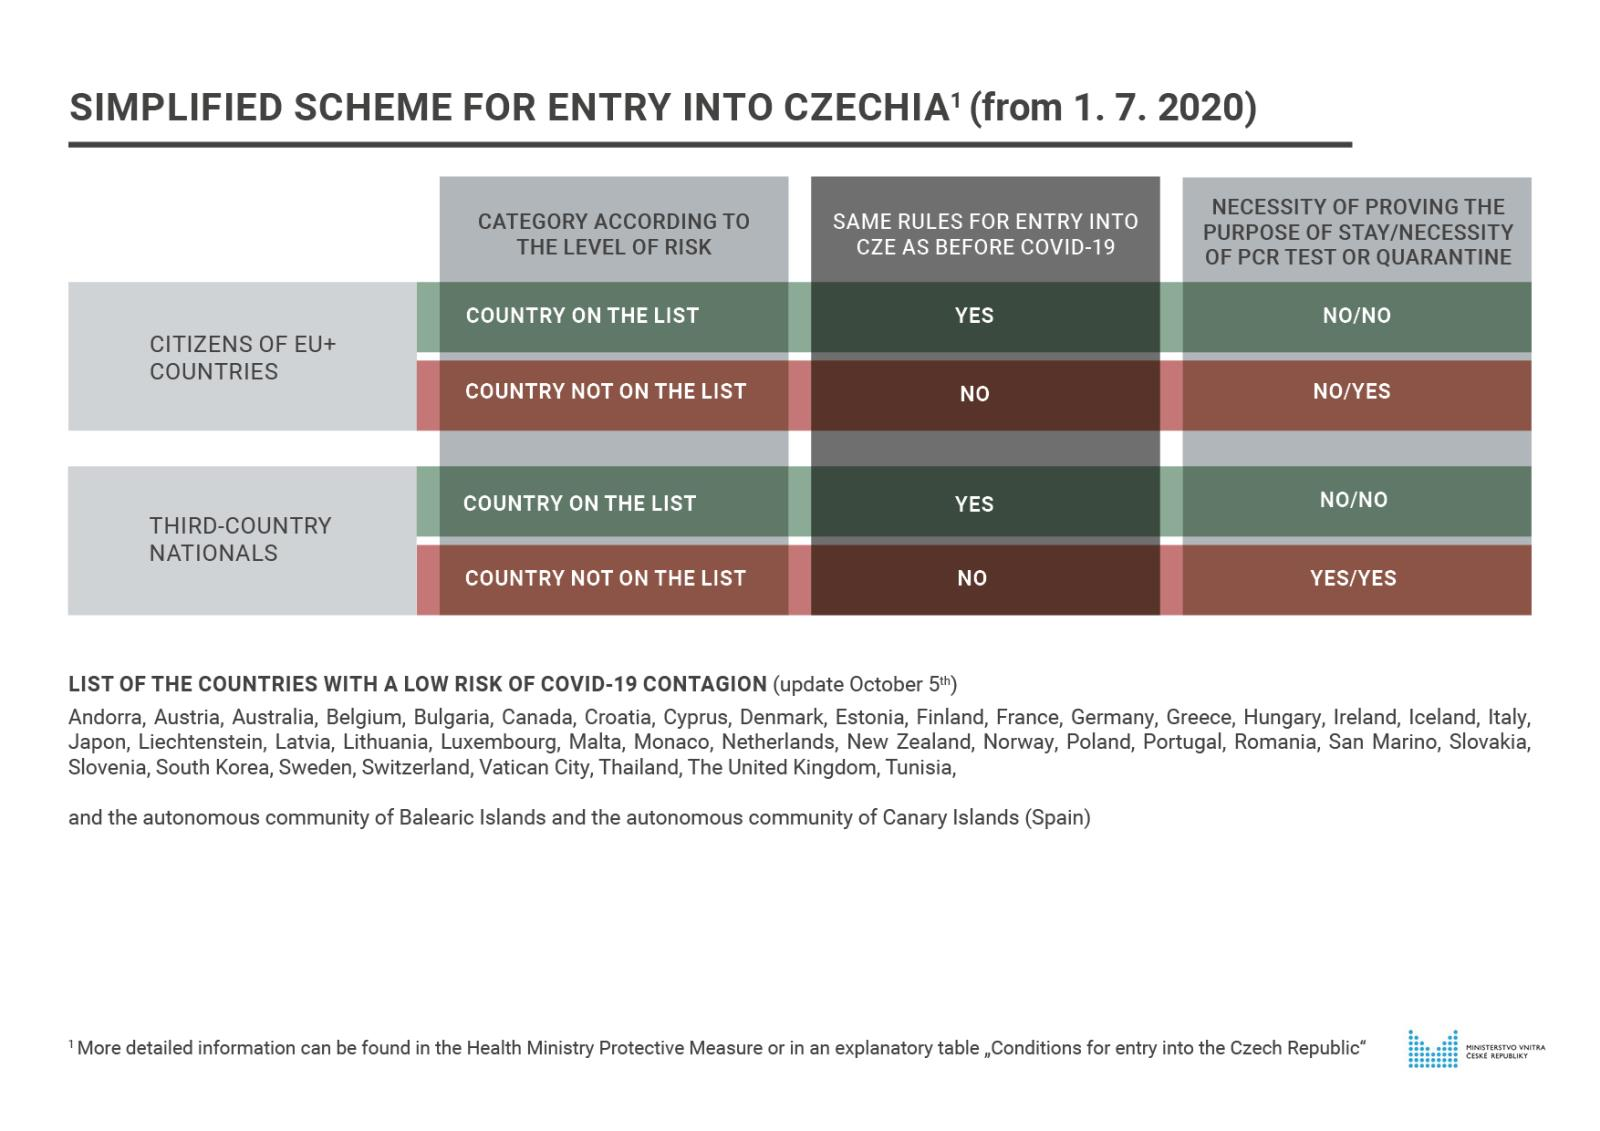 Simplified_scheme_for_entry_into_CZ_from_July_1st_2020_-_20200914.jpg